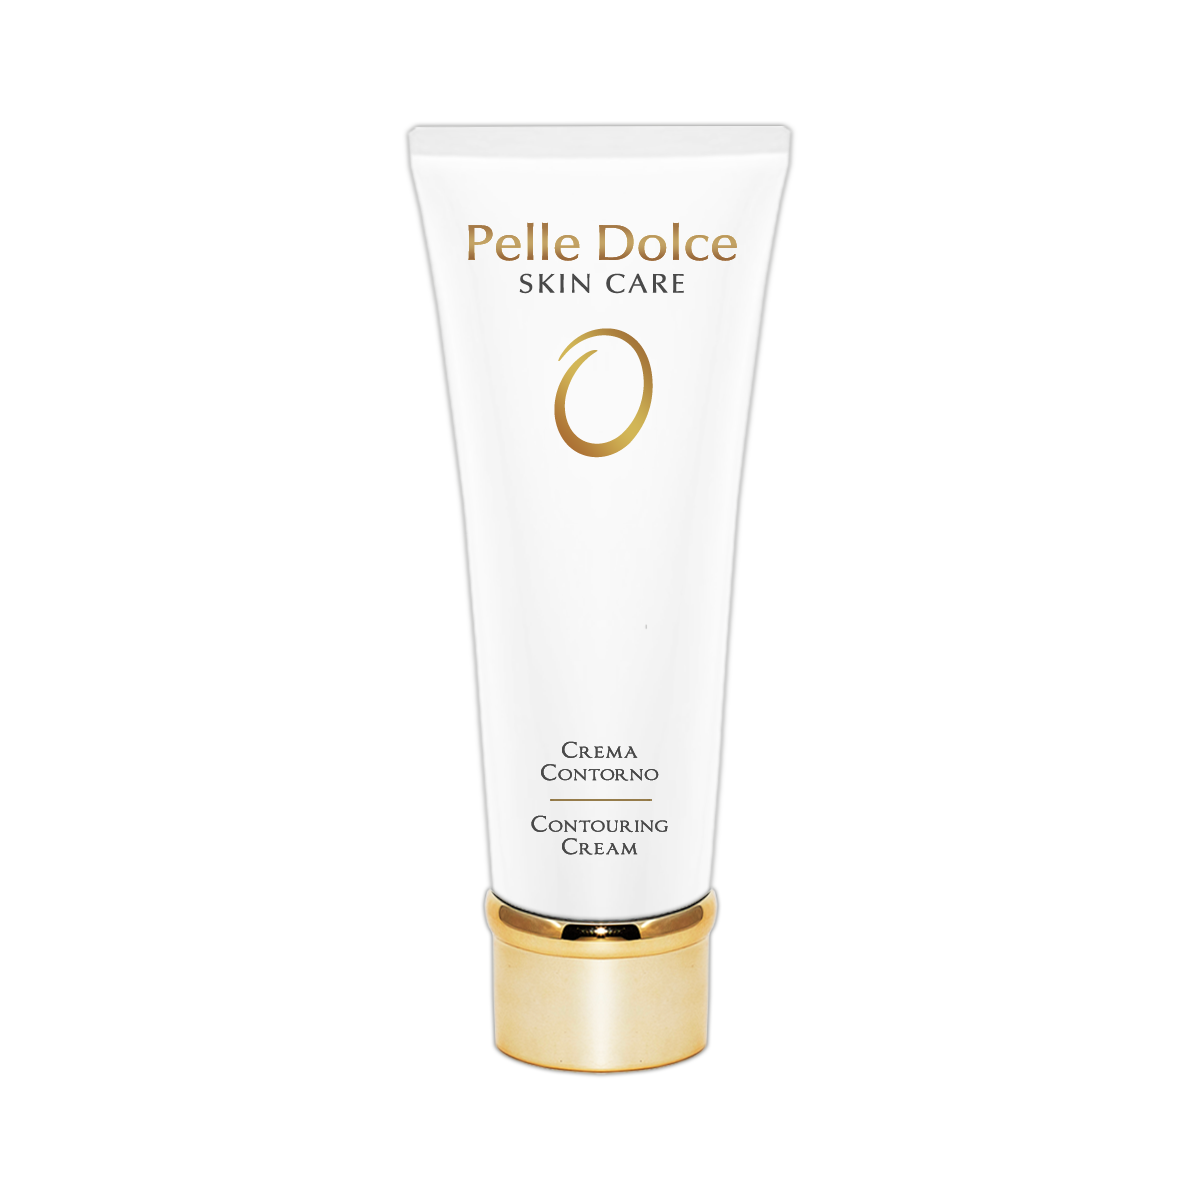 pelle-dolce-skin-care-cellulite-contouring-cream